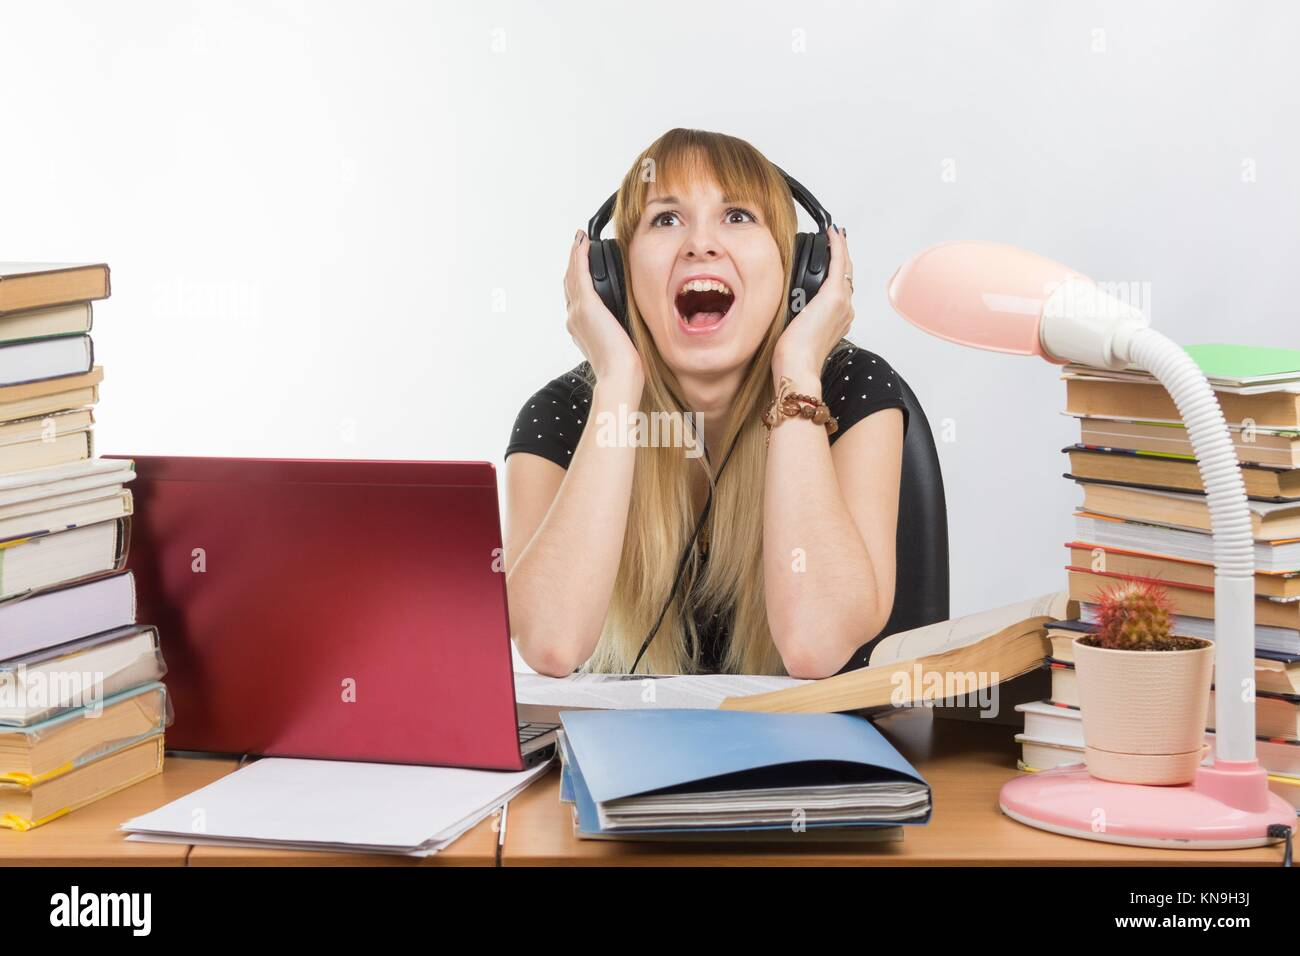 A student shouts from fatigue while listening to music on headphones. - Stock Image